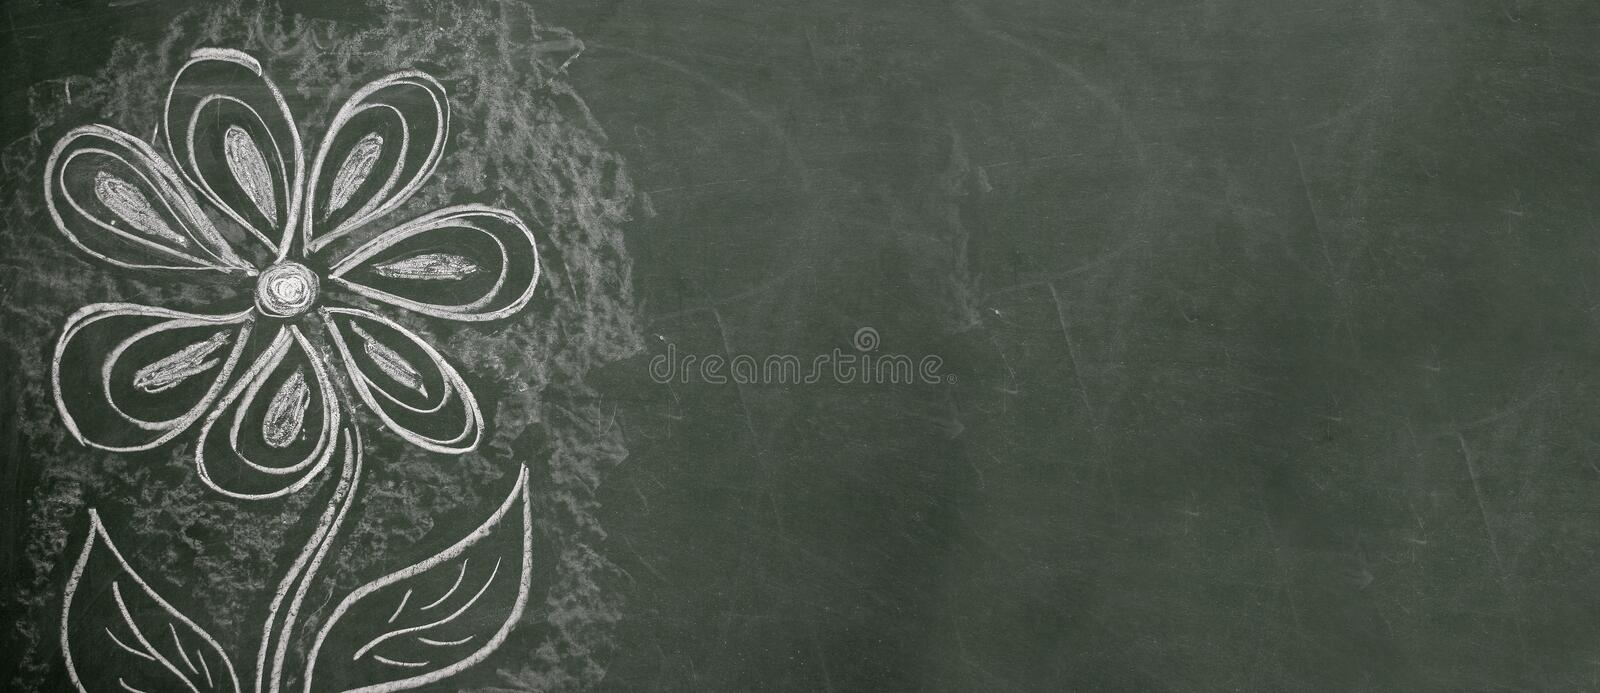 Download Chalkboard Drawing stock photo. Image of elementary, sketch - 118642